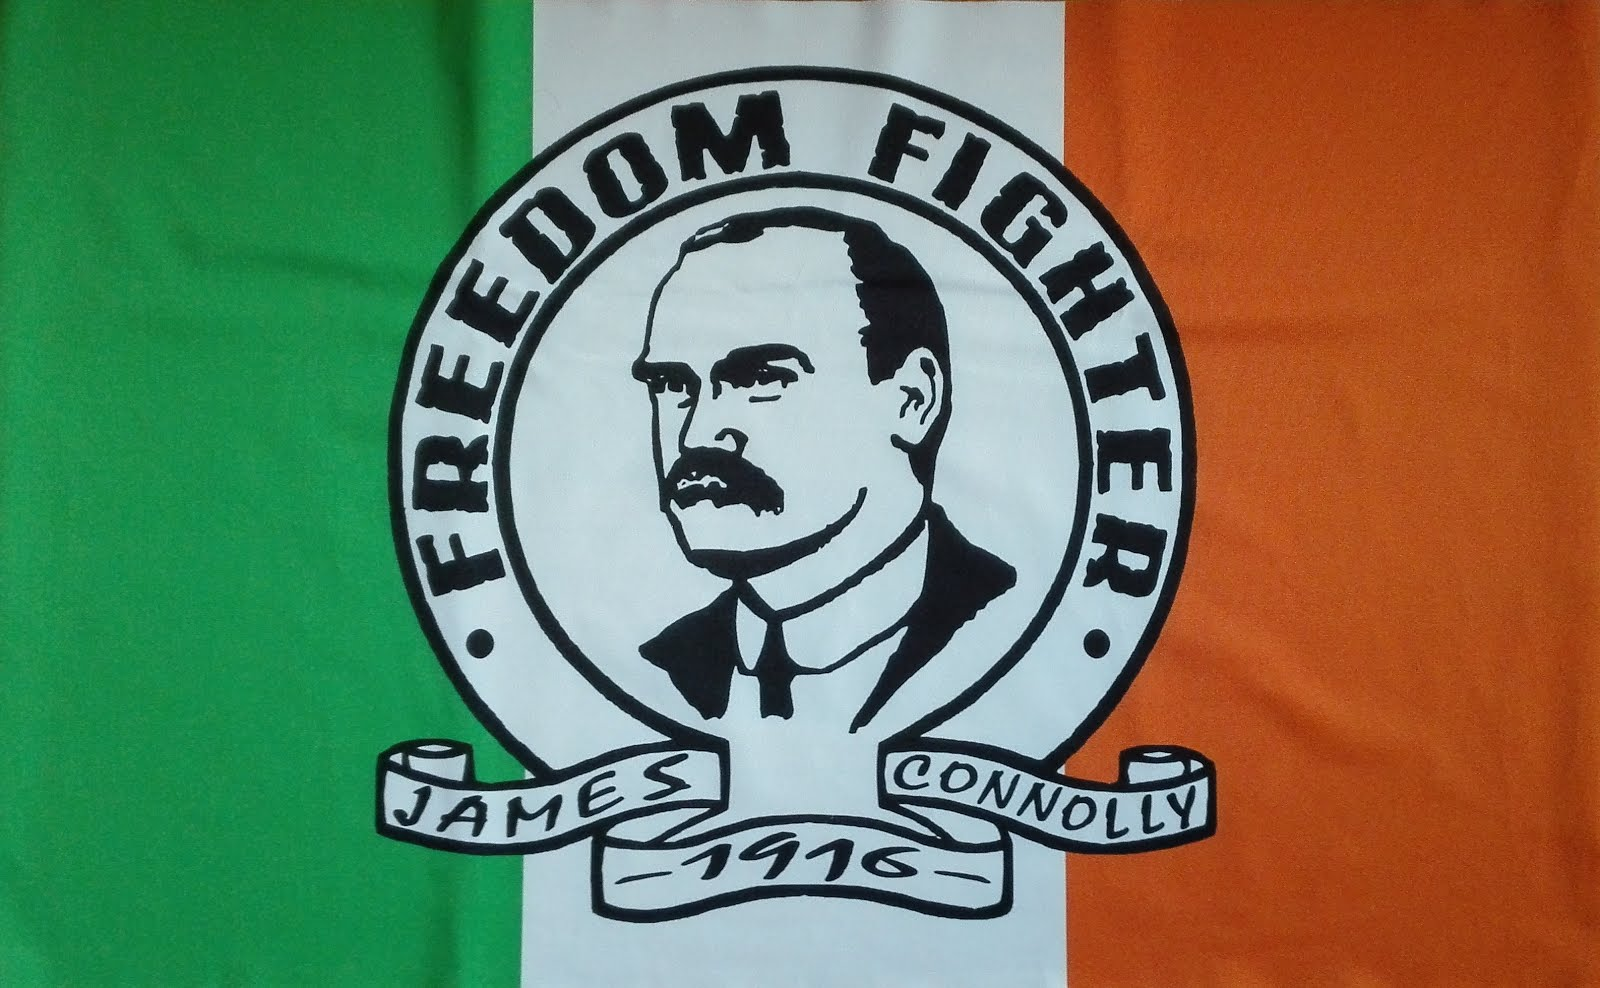 Banderola 'James Connolly - Tricolor' - 10€